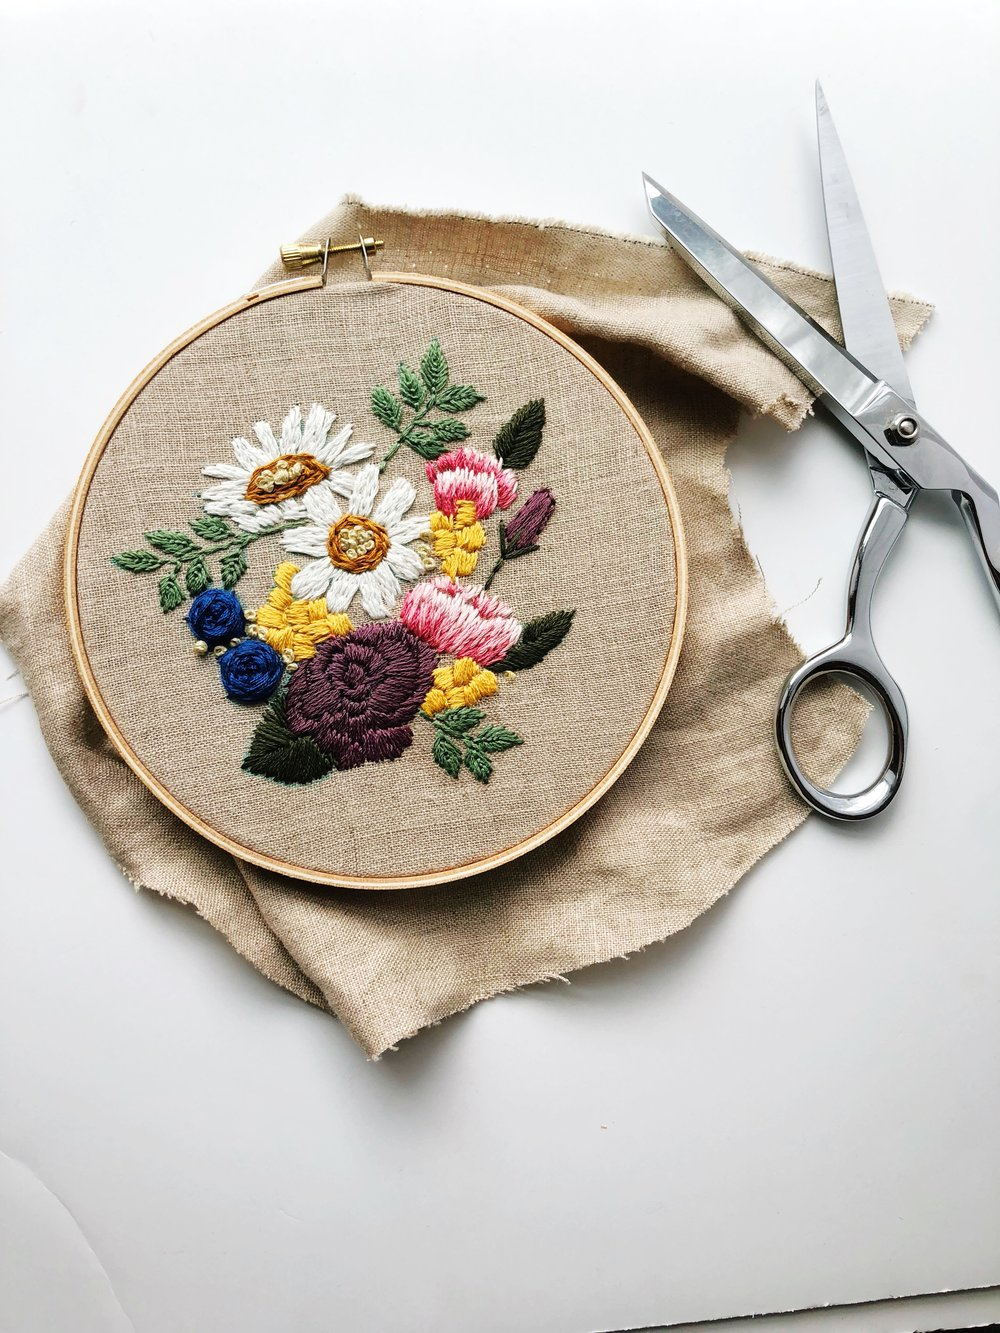 Embroidery Tutorials - DIYs and How Tos on the blog